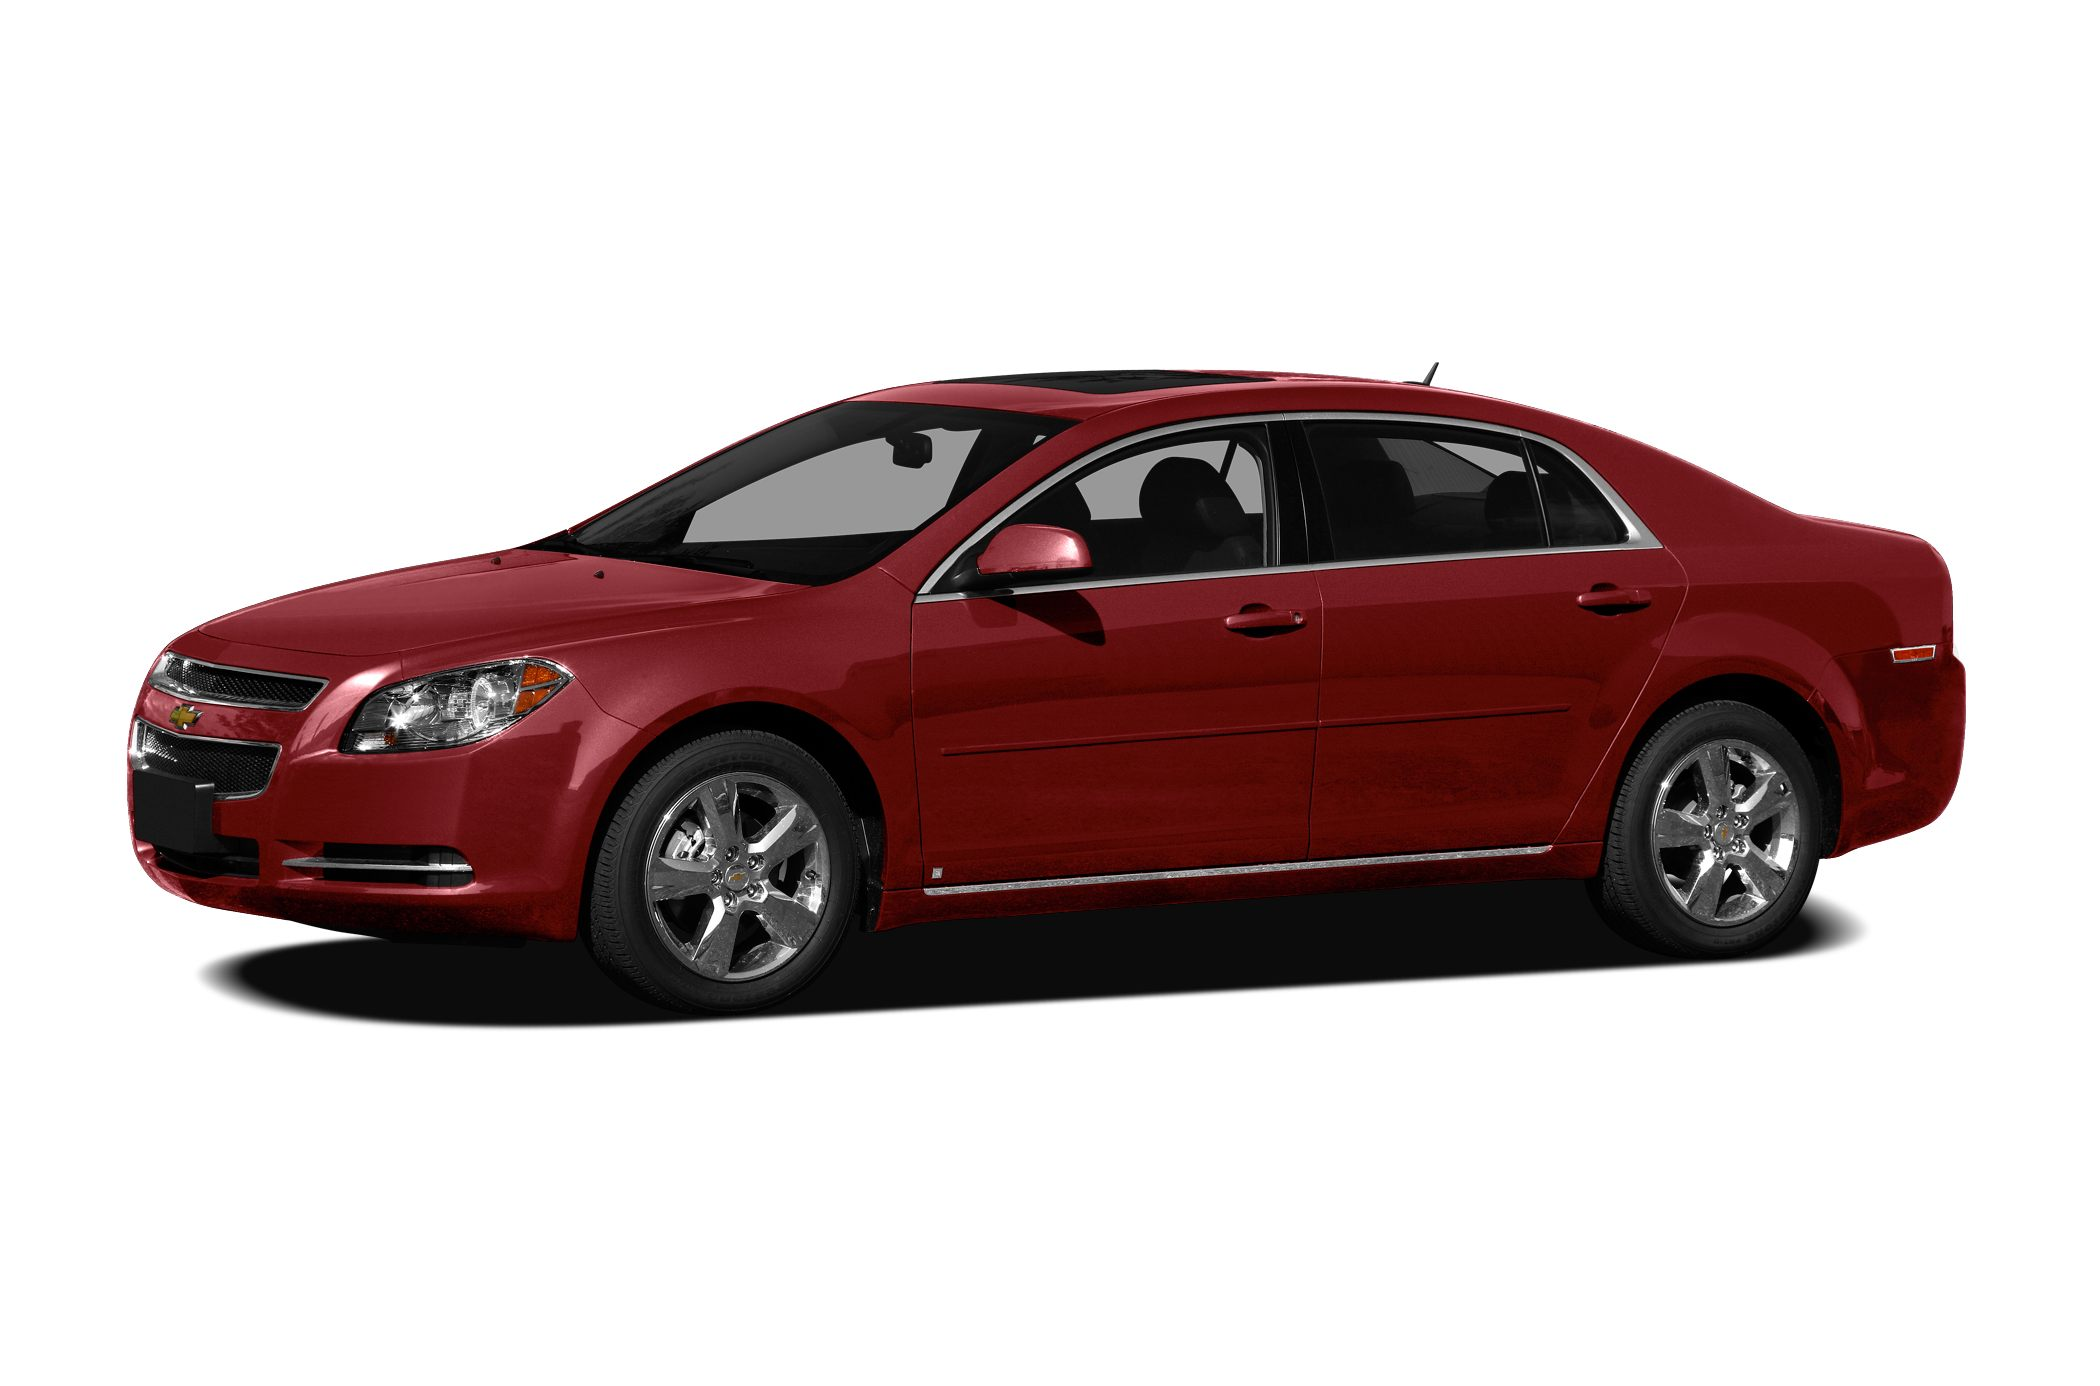 2012 Chevrolet Malibu LS Sedan for sale in Whiteville for $13,900 with 63,078 miles